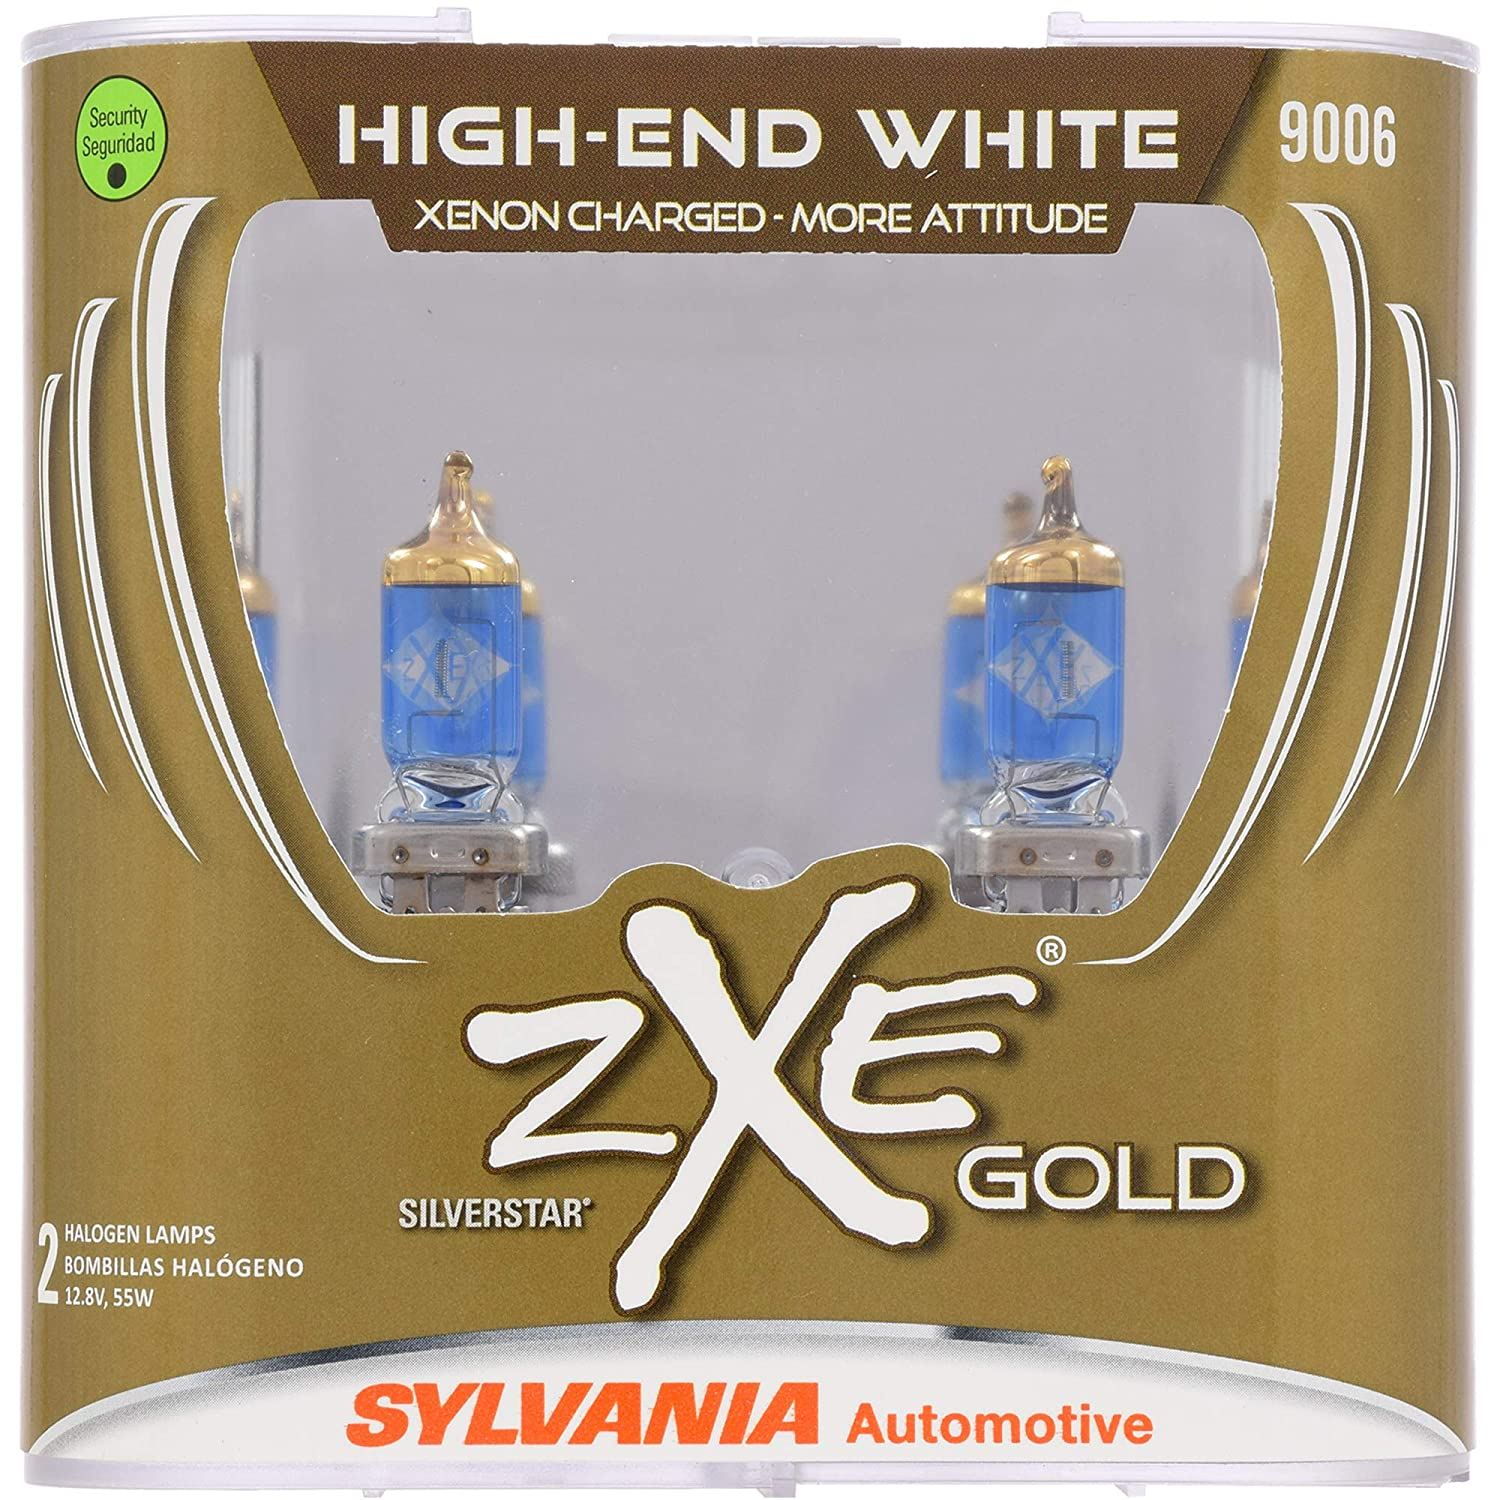 ... Performance Halogen Headlight Bulb - Headlight & Fog Light, Bright White Light Output, Best HID Alternative, Xenon Charged Technology (Contains 2 Bulbs)